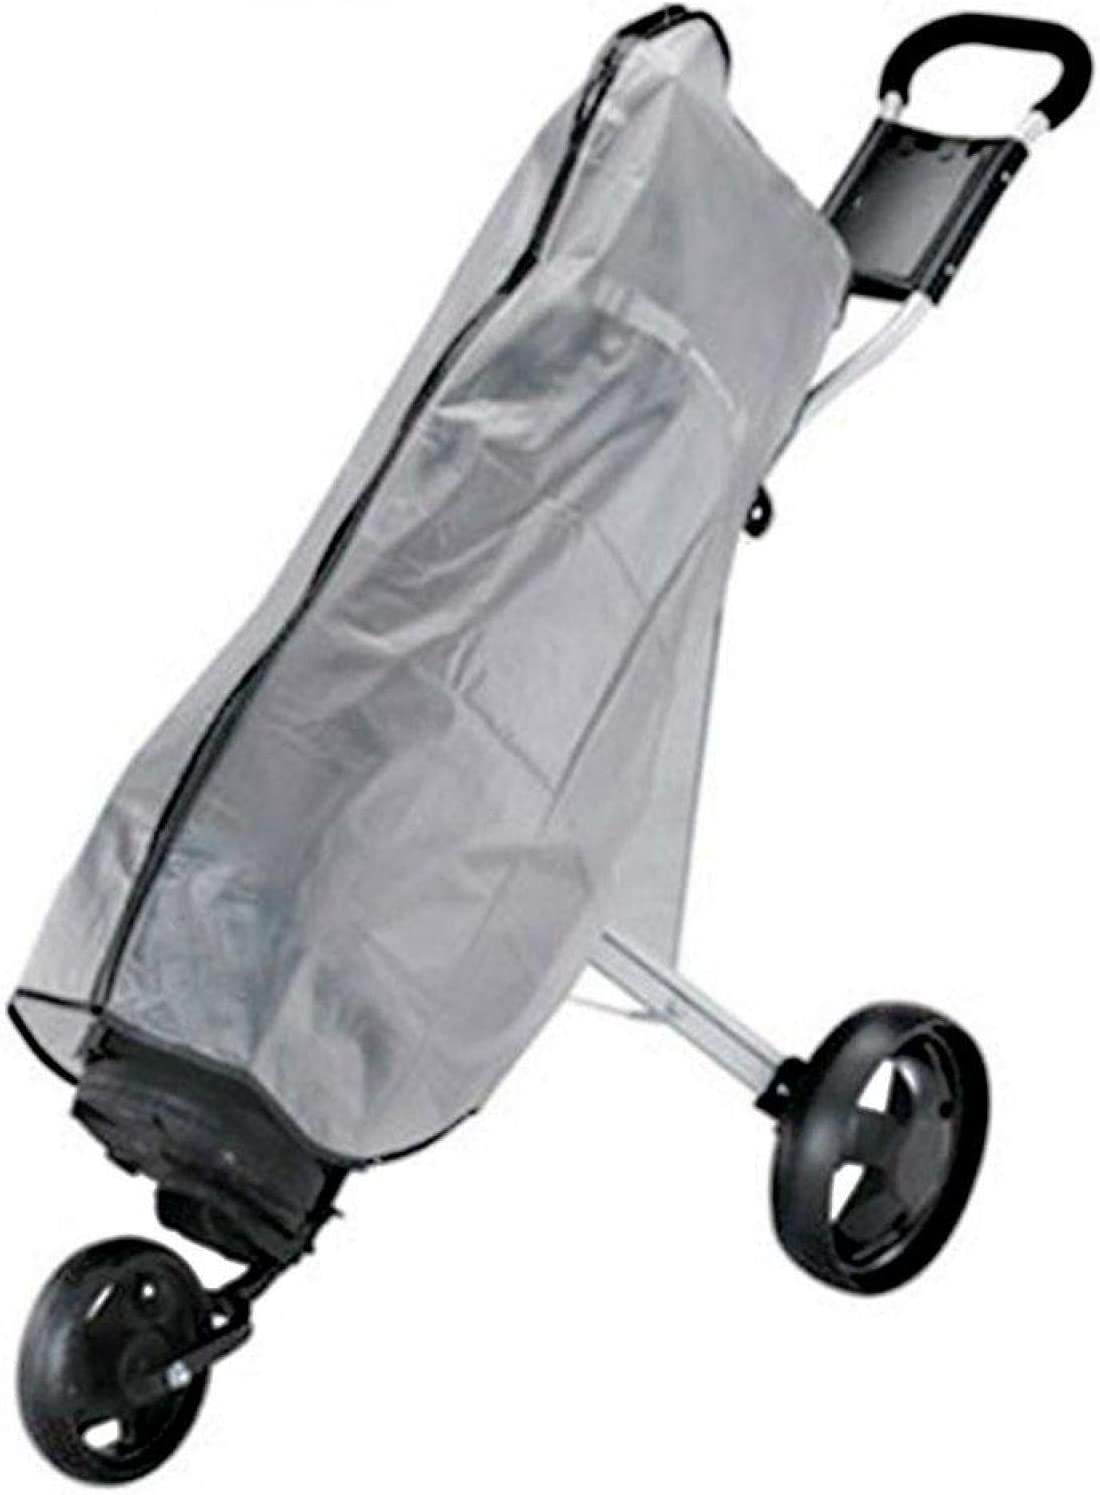 Emoshayoga Transparent Clearance SALE! Limited time! Golf Bag Training Cover for Max 70% OFF